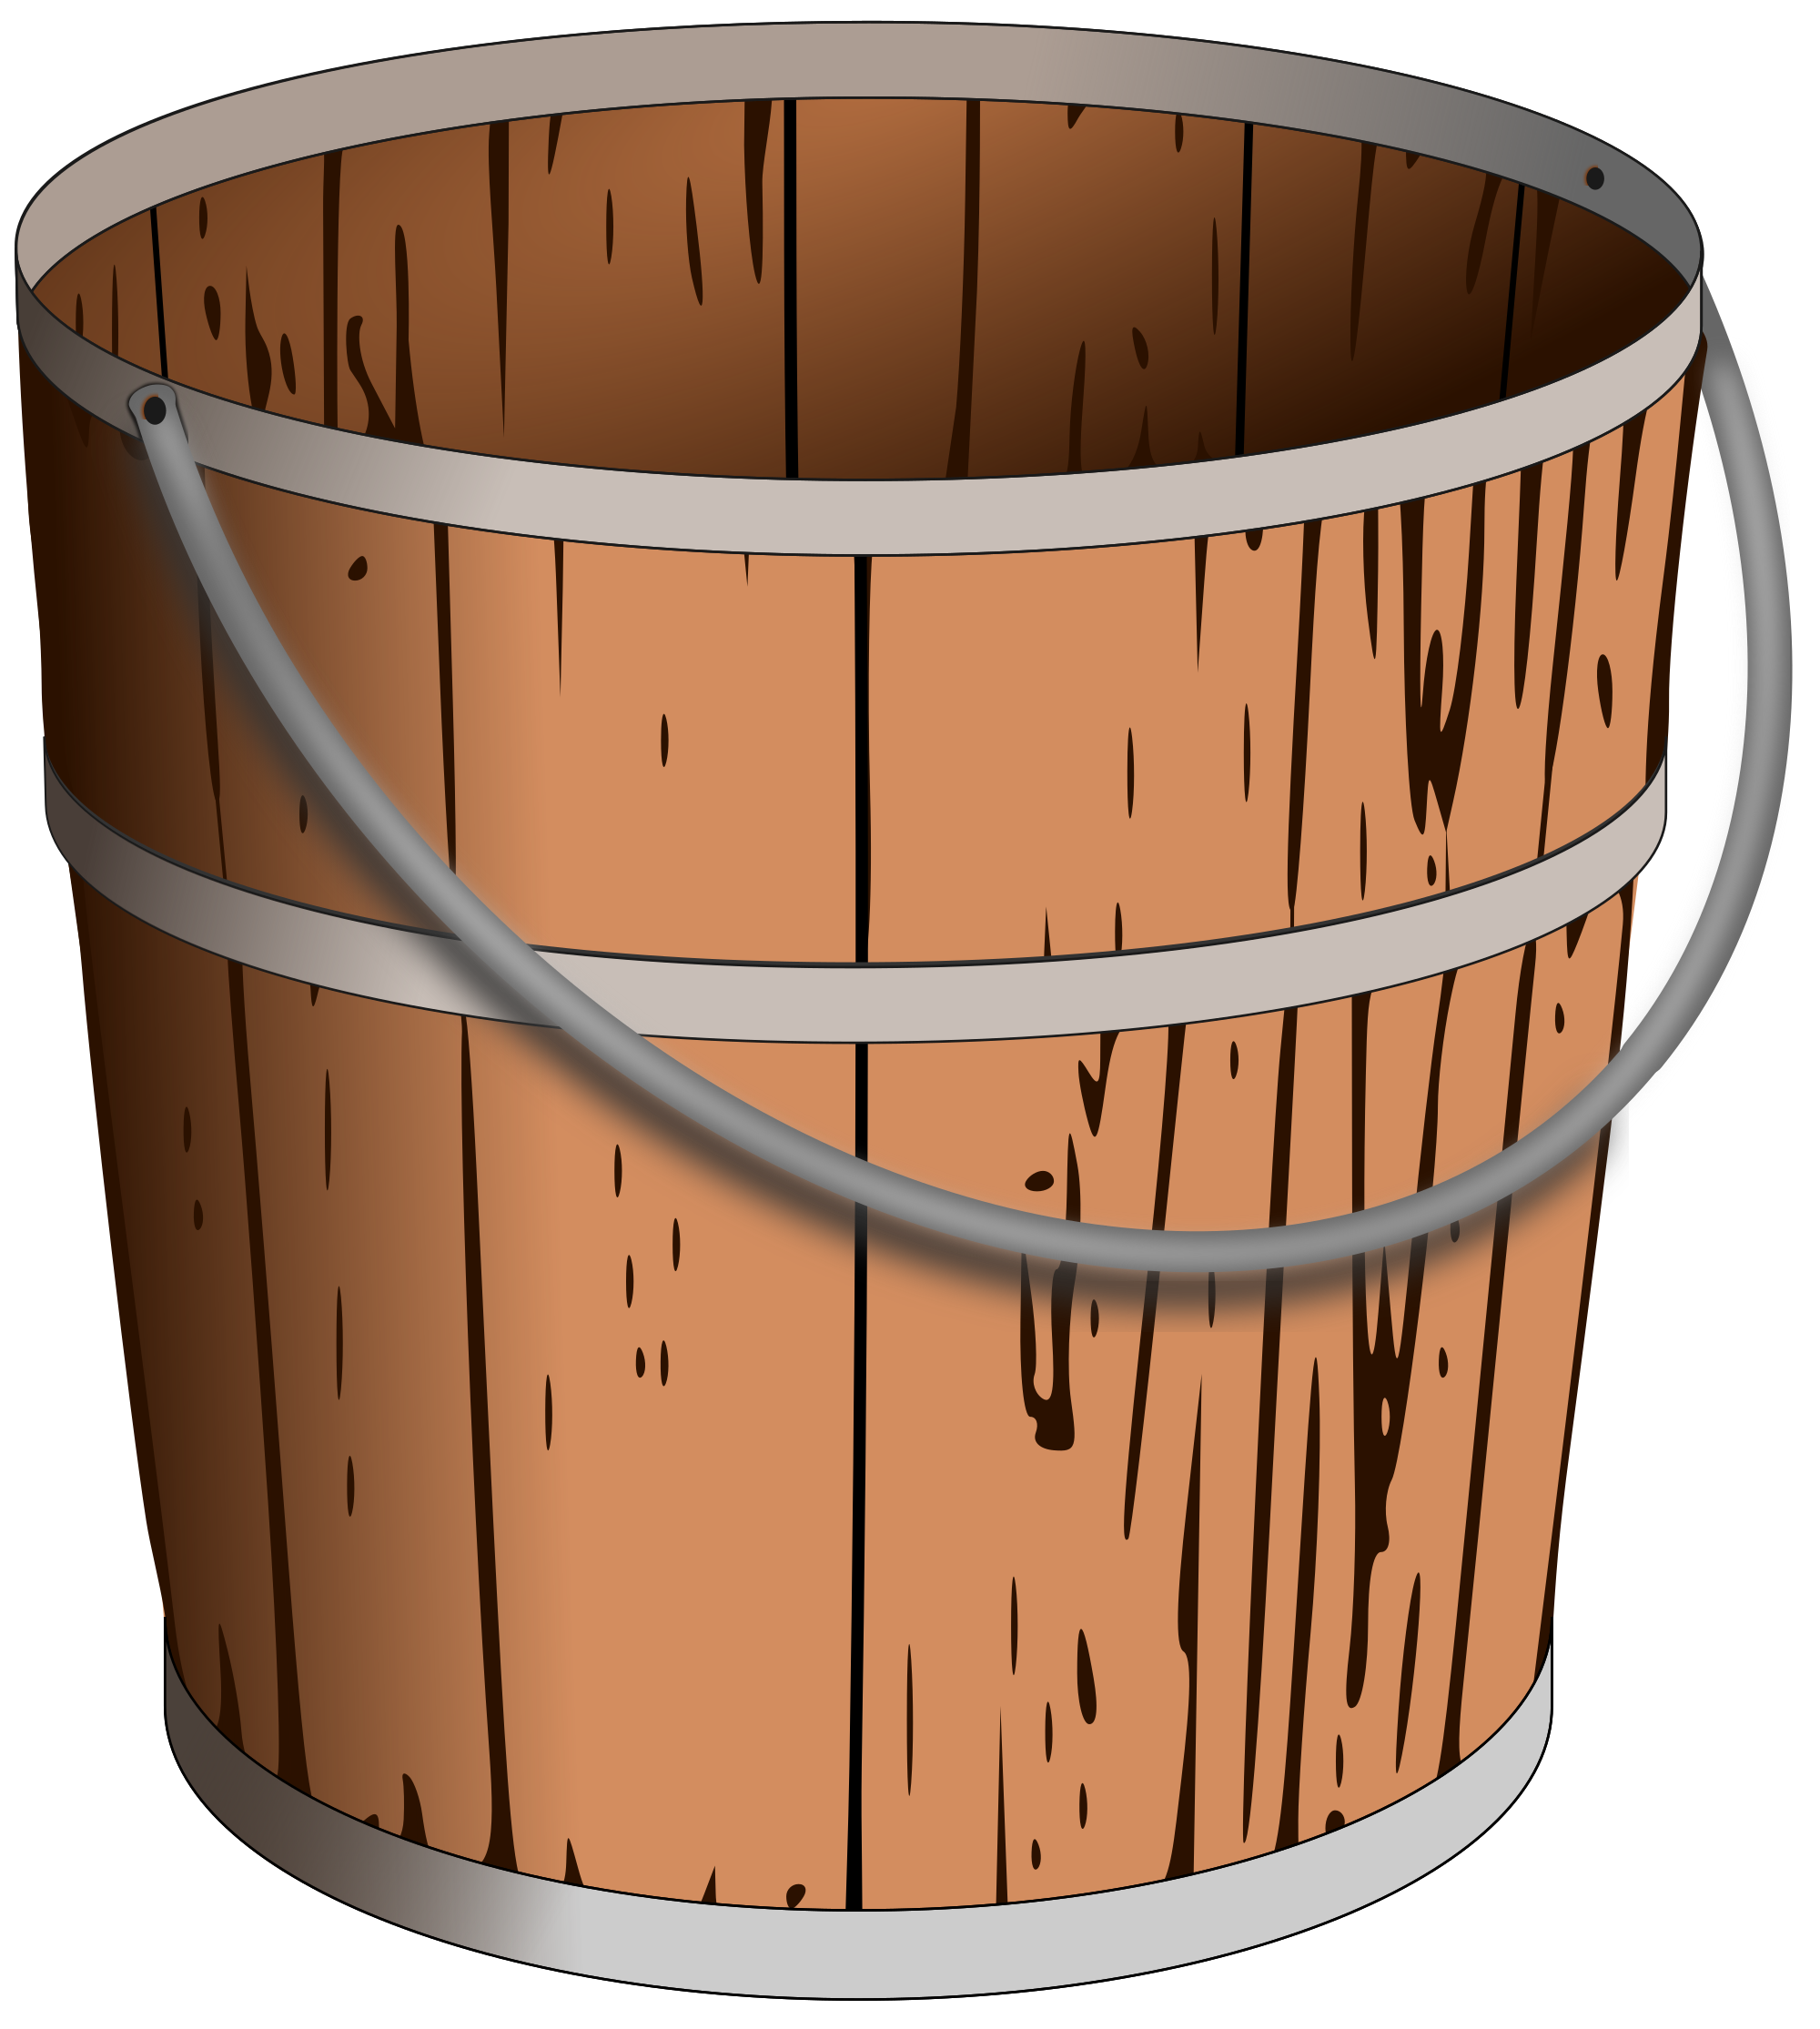 transparent download Bucket clipart svg. File wooden pail wikimedia